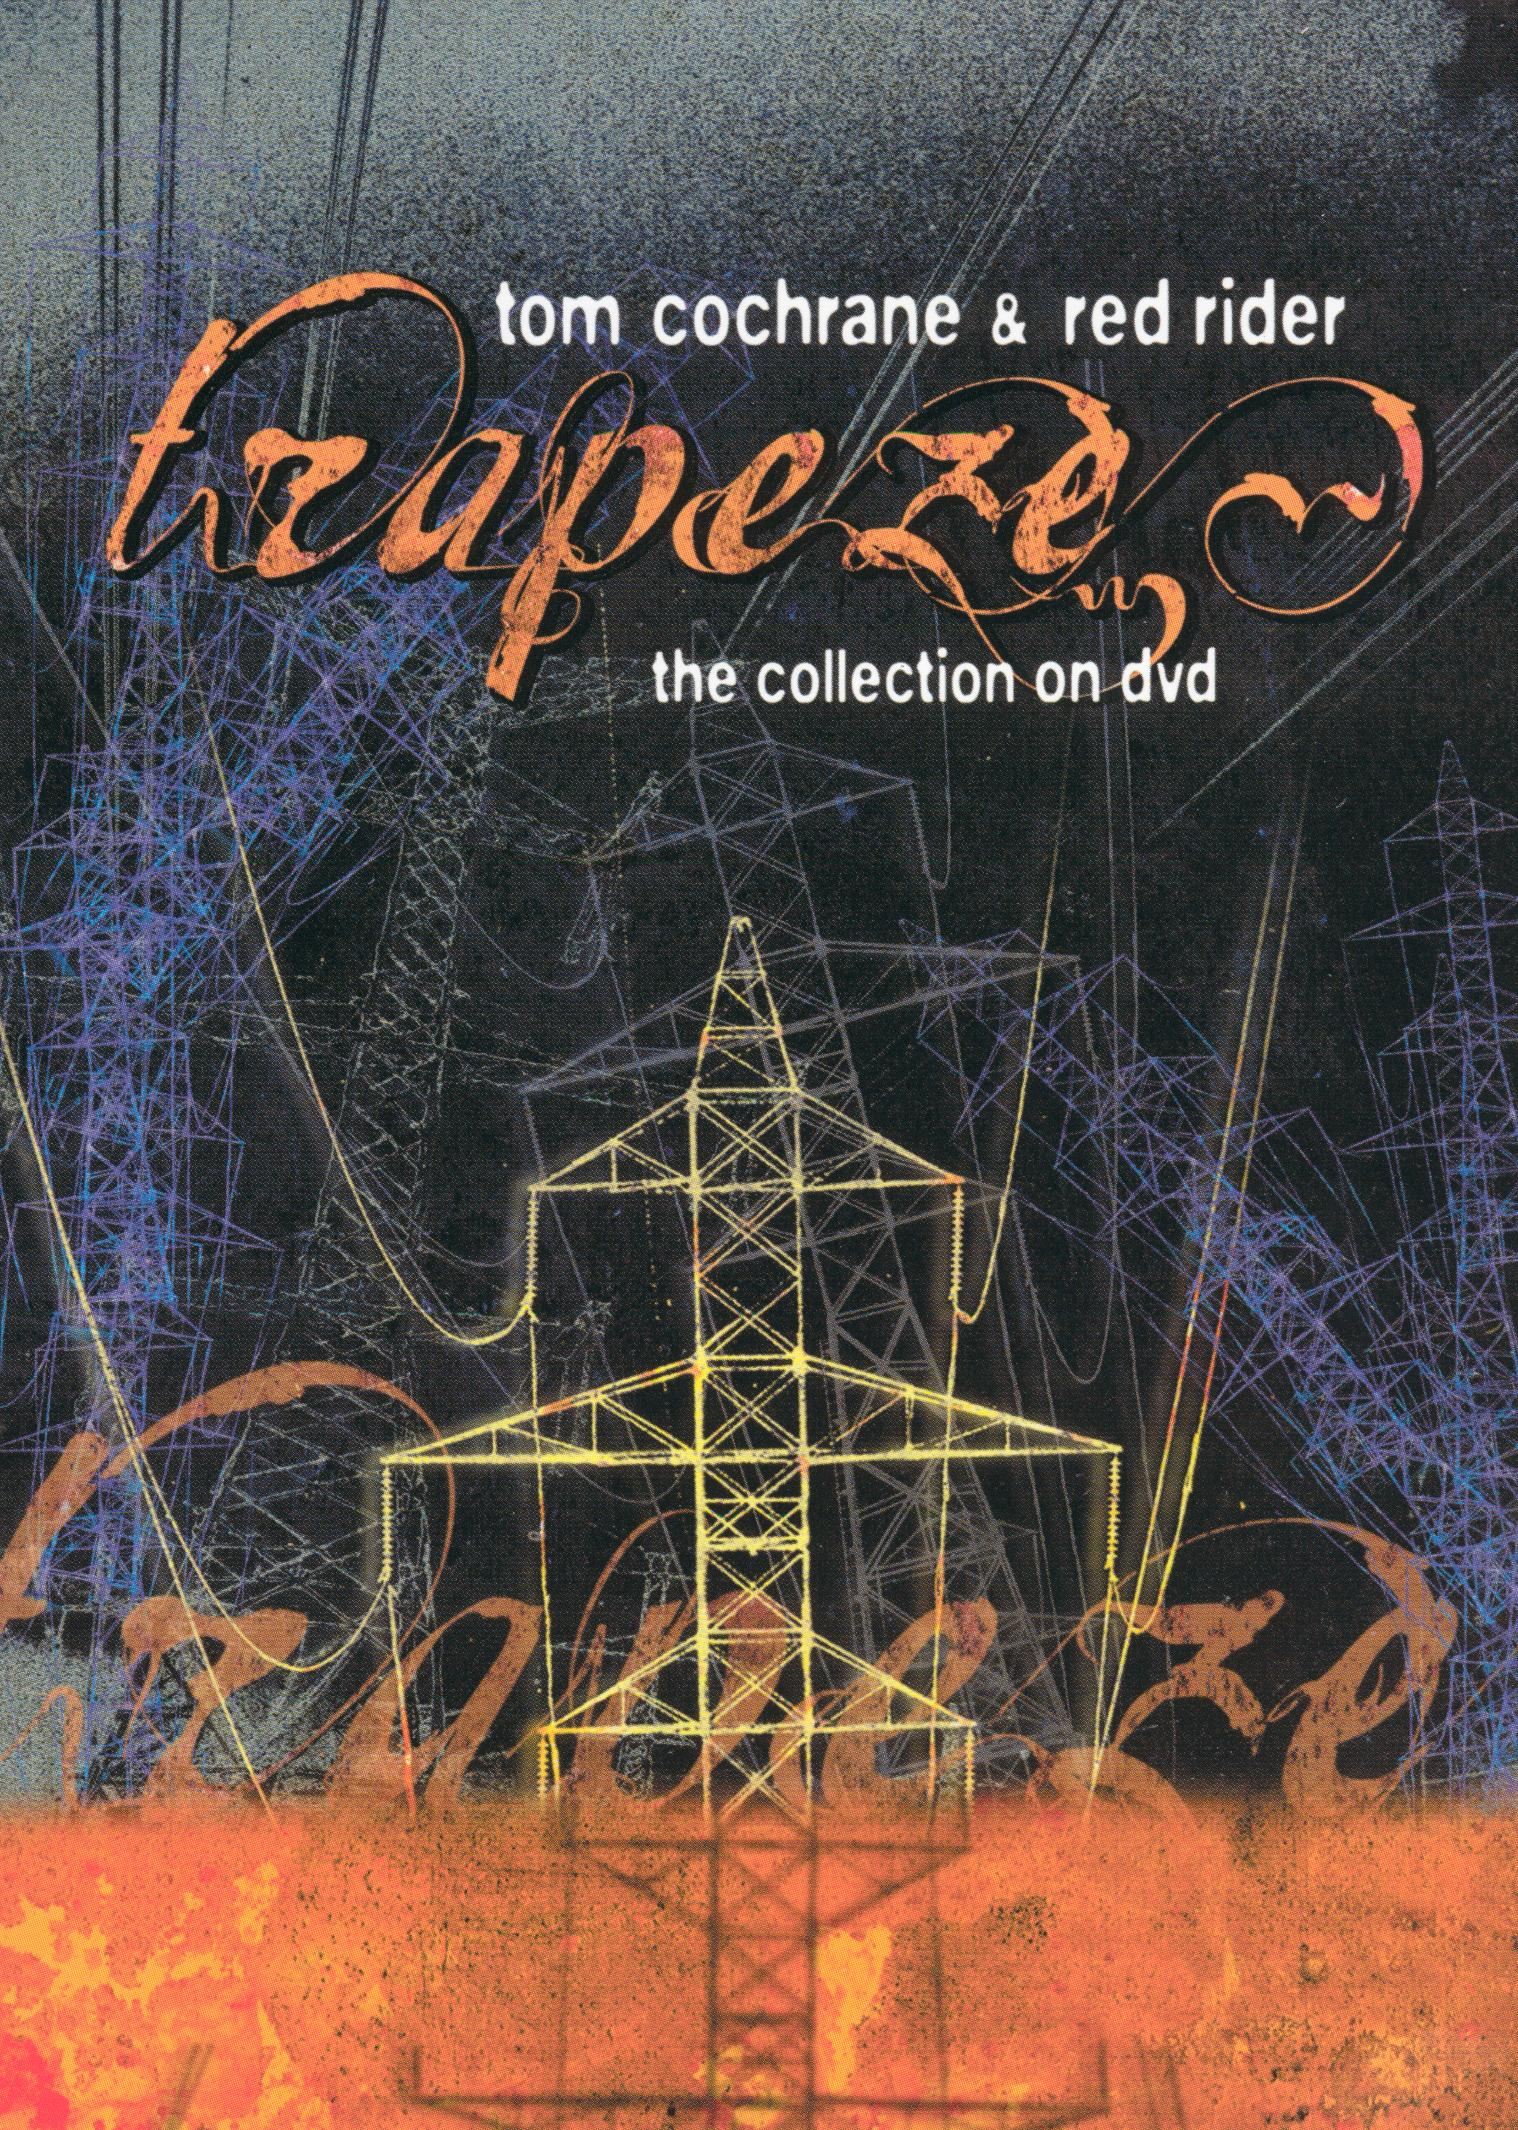 Tom Cochrane and Red Rider: Trapeze - The Collection